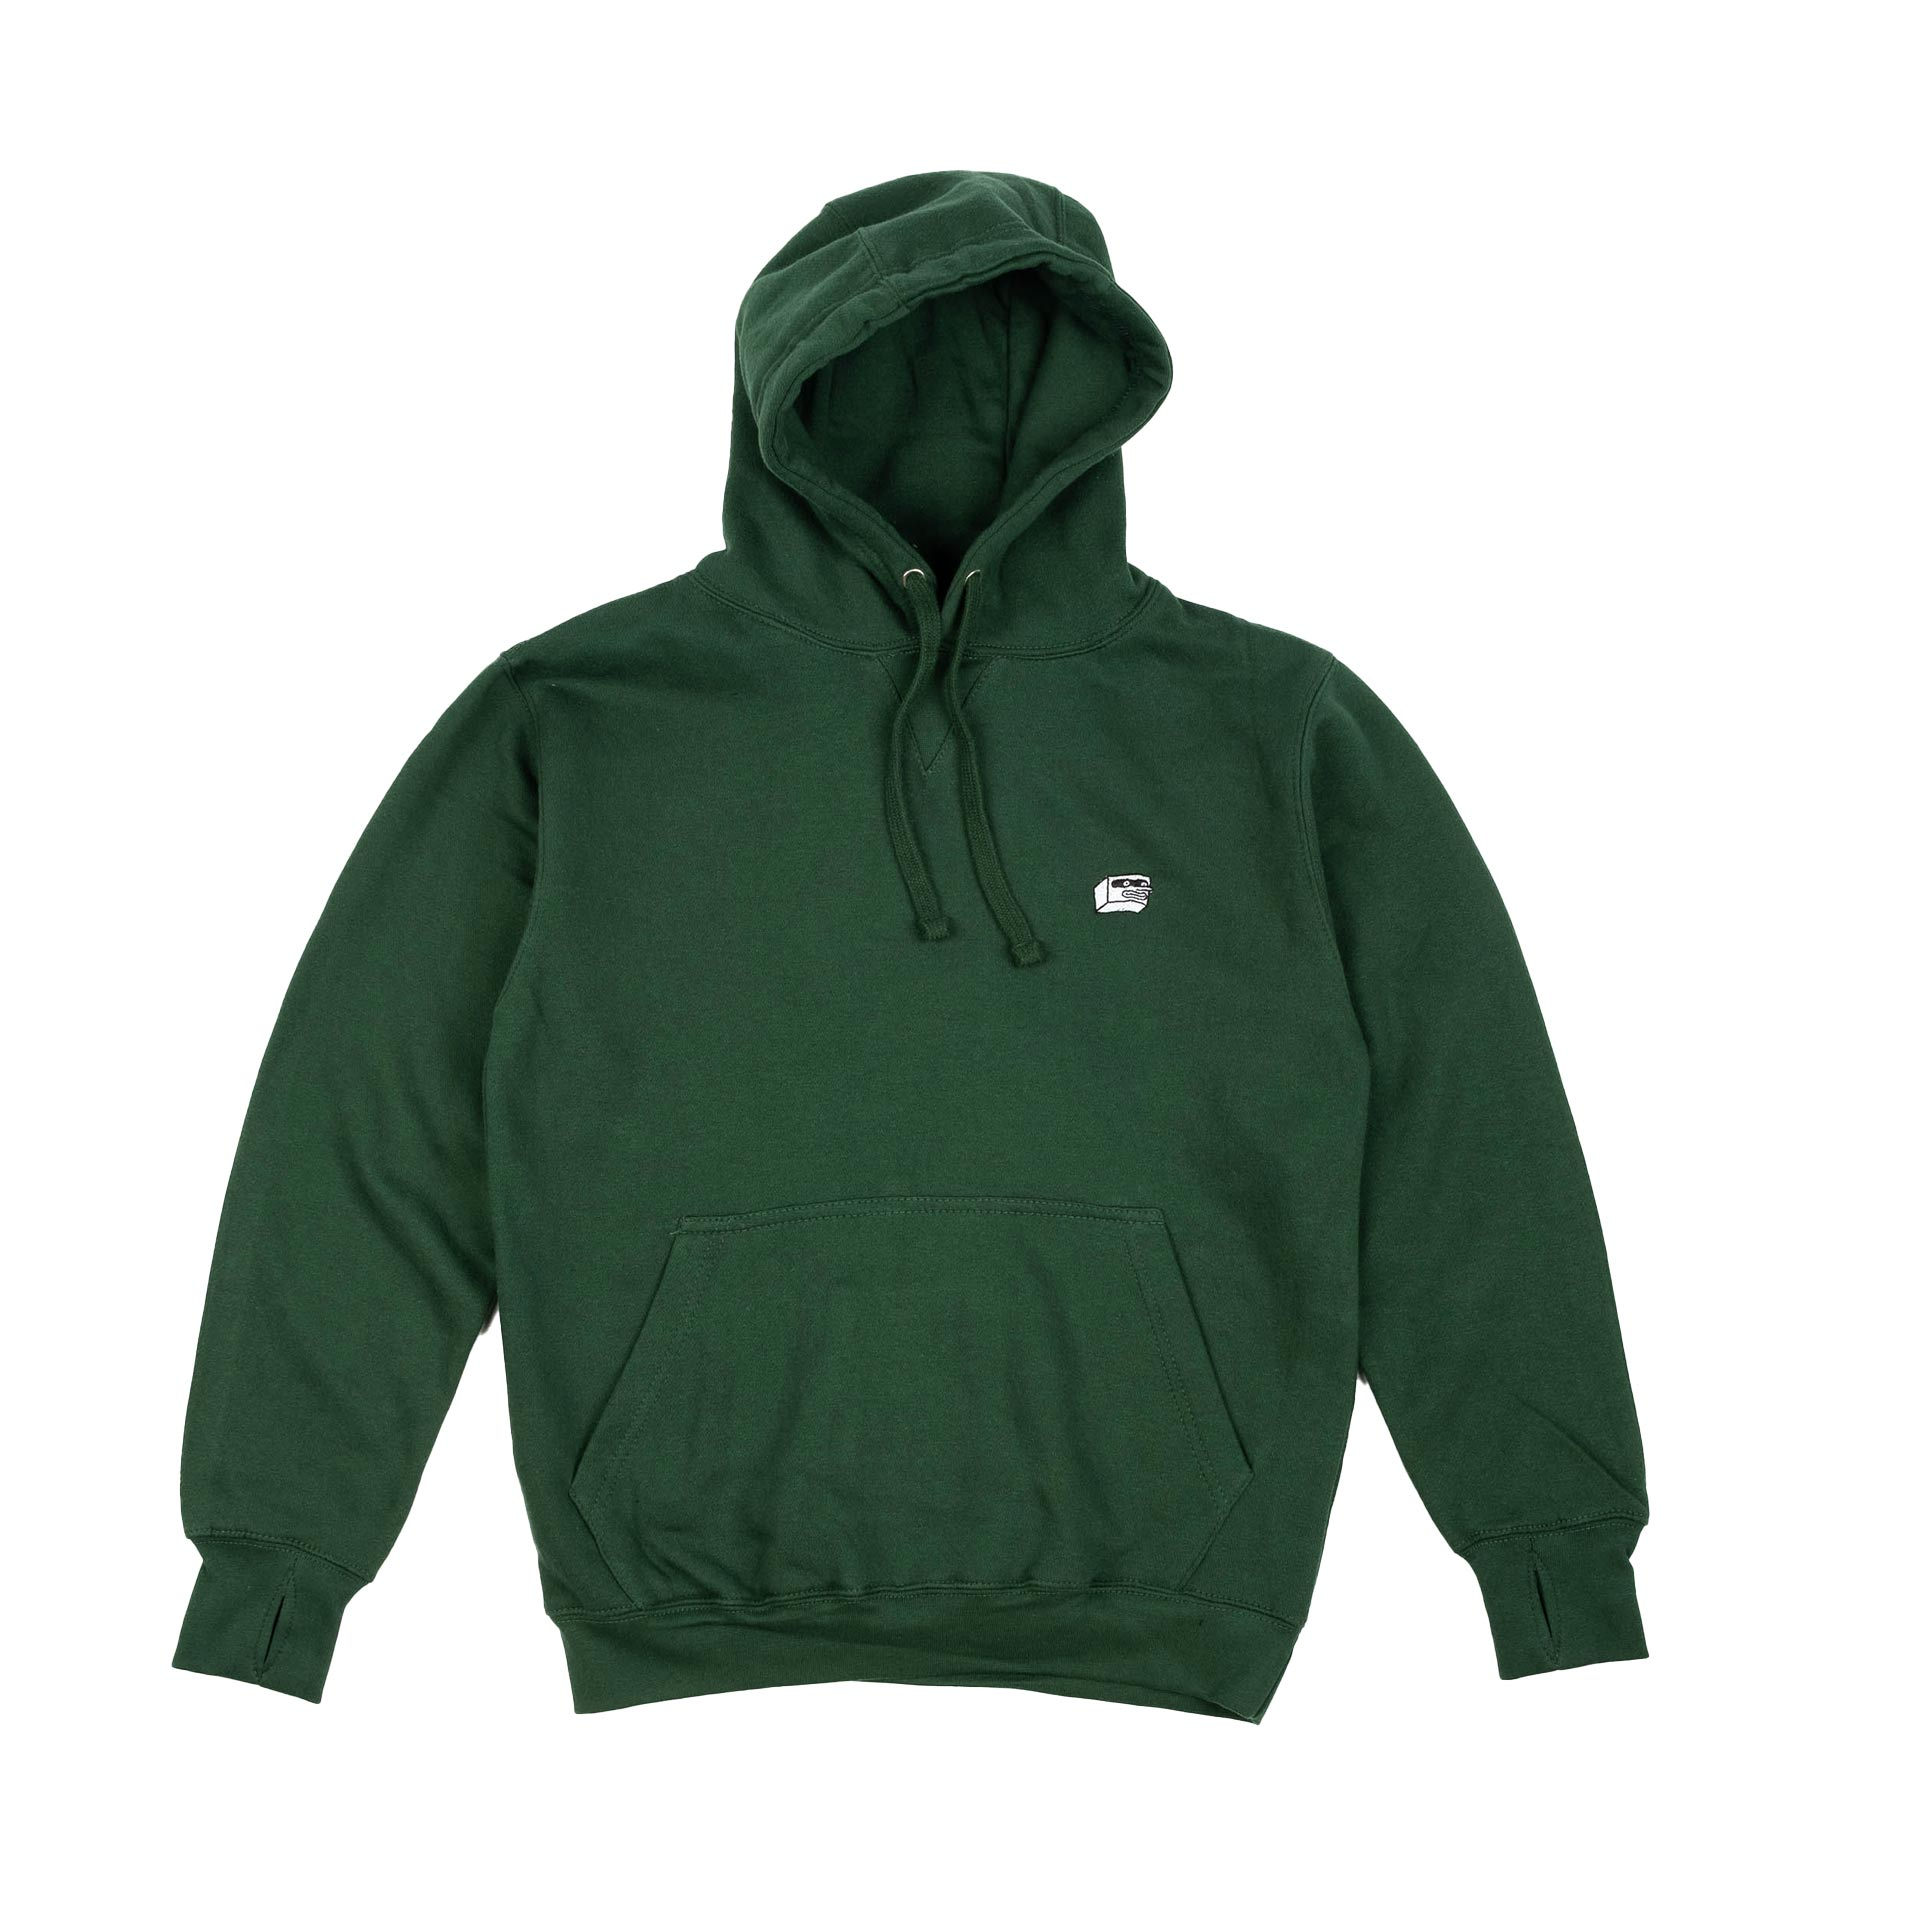 Dorkzone Embroided Boxhead Hoodie Bottle Green